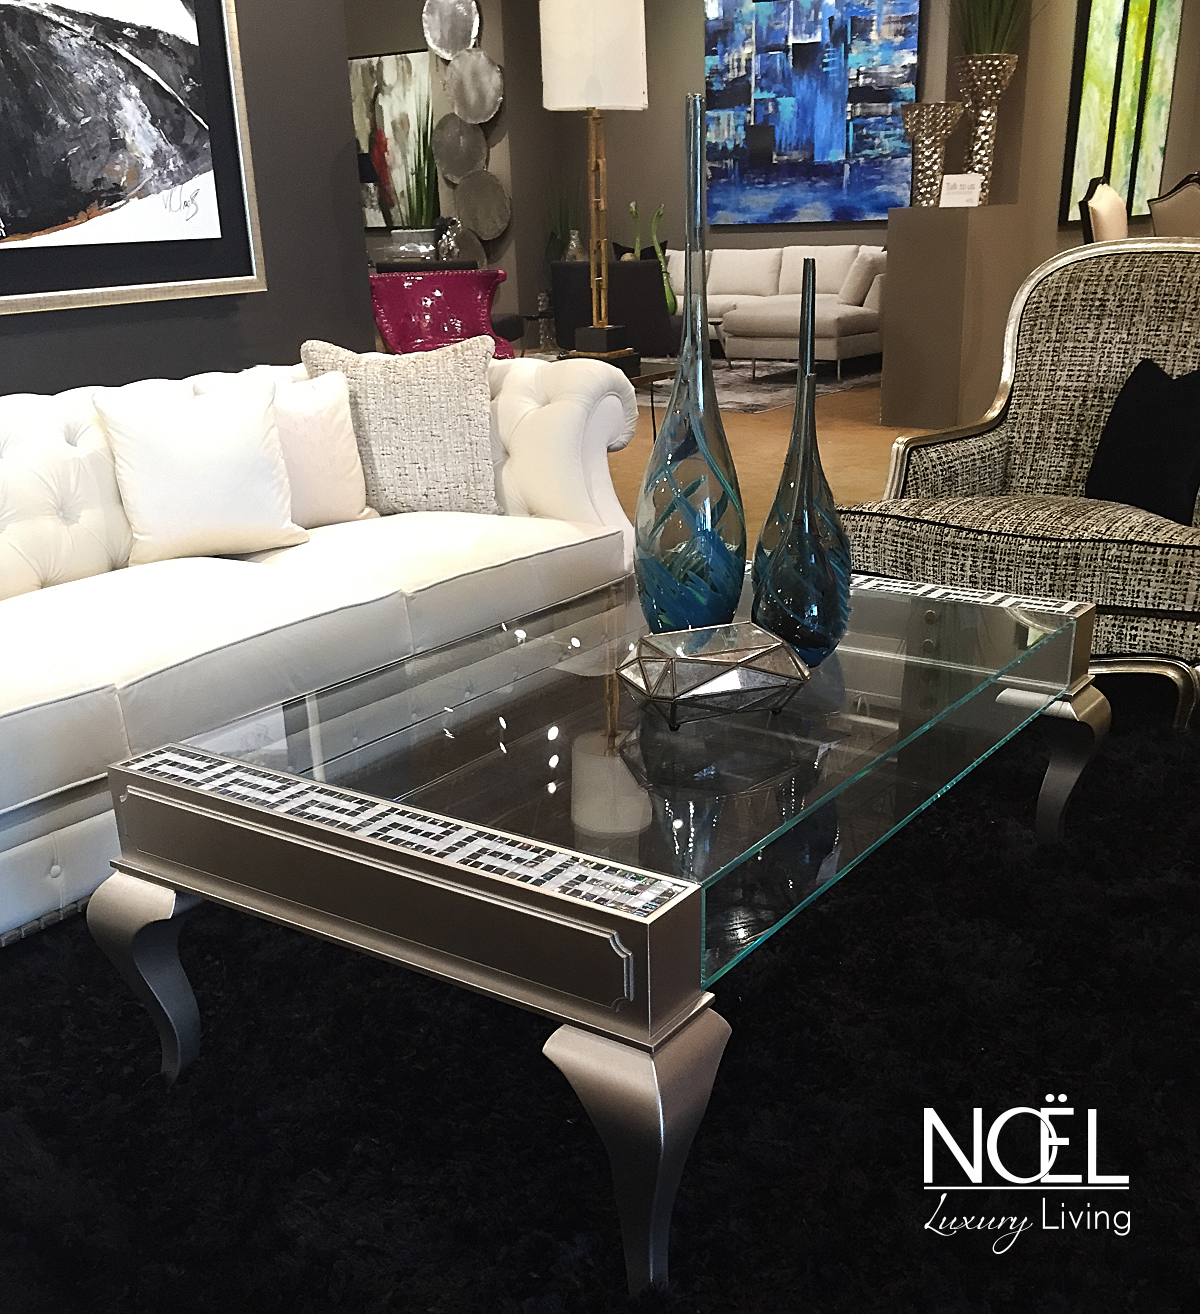 Noel furniture in houston tx 77098 for I furniture houston